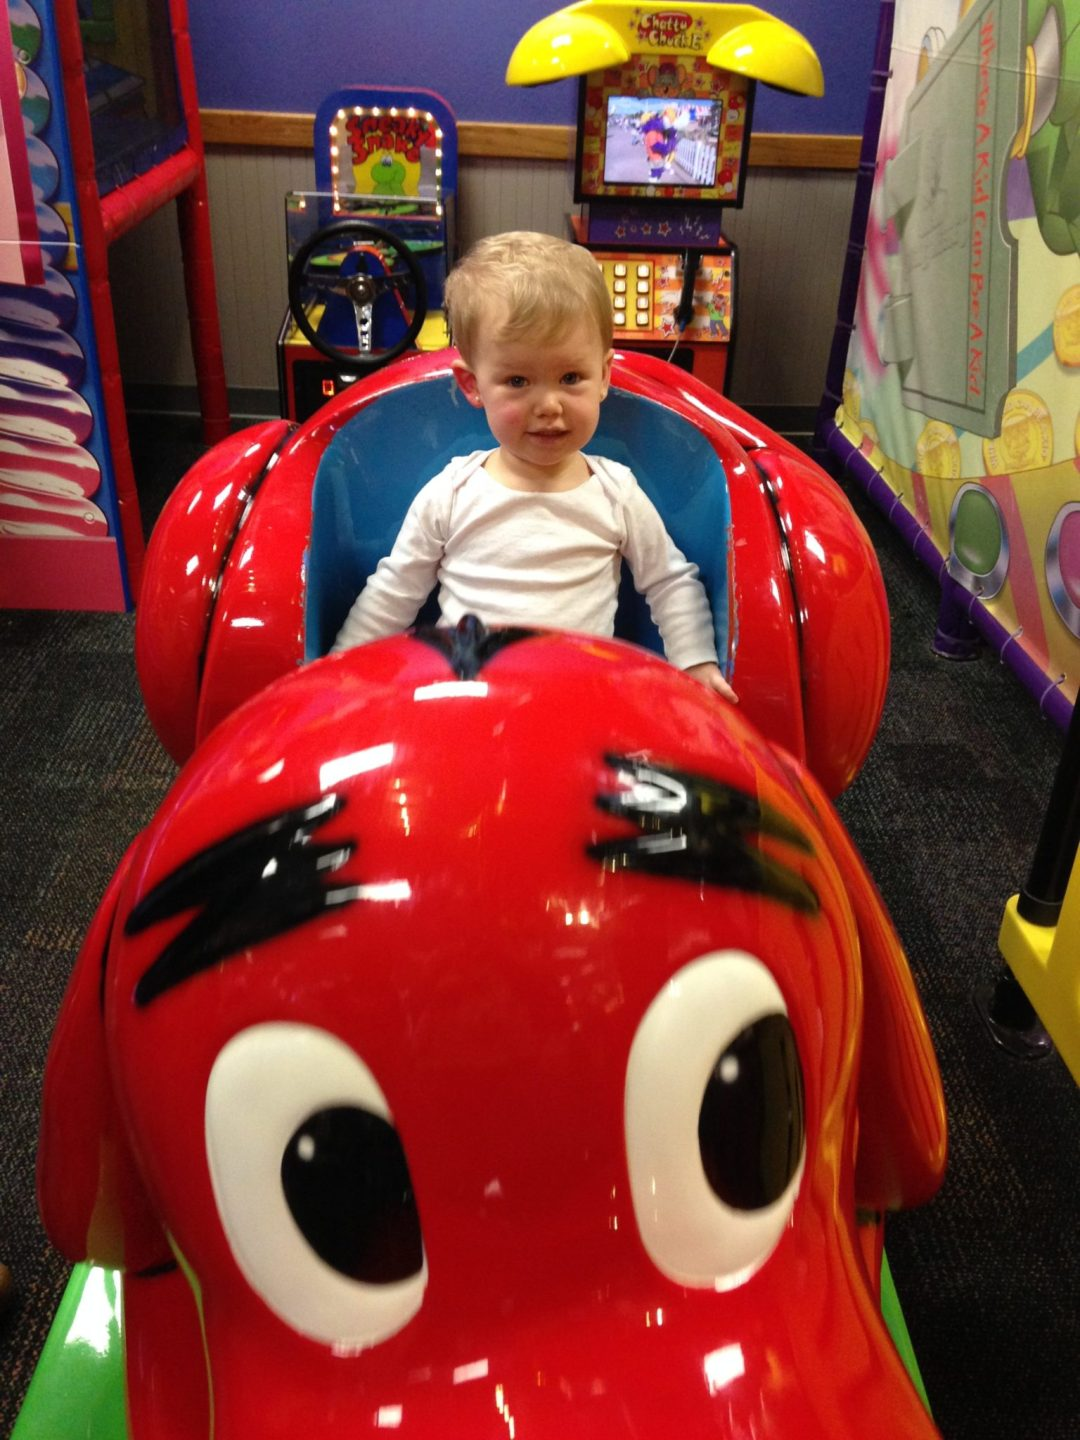 """Clifford Ride. Image by Shannon McGee <a href=""""https://flic.kr/p/pF27aP"""" target=""""_blank"""">Shannon McGee/flickr</a>"""